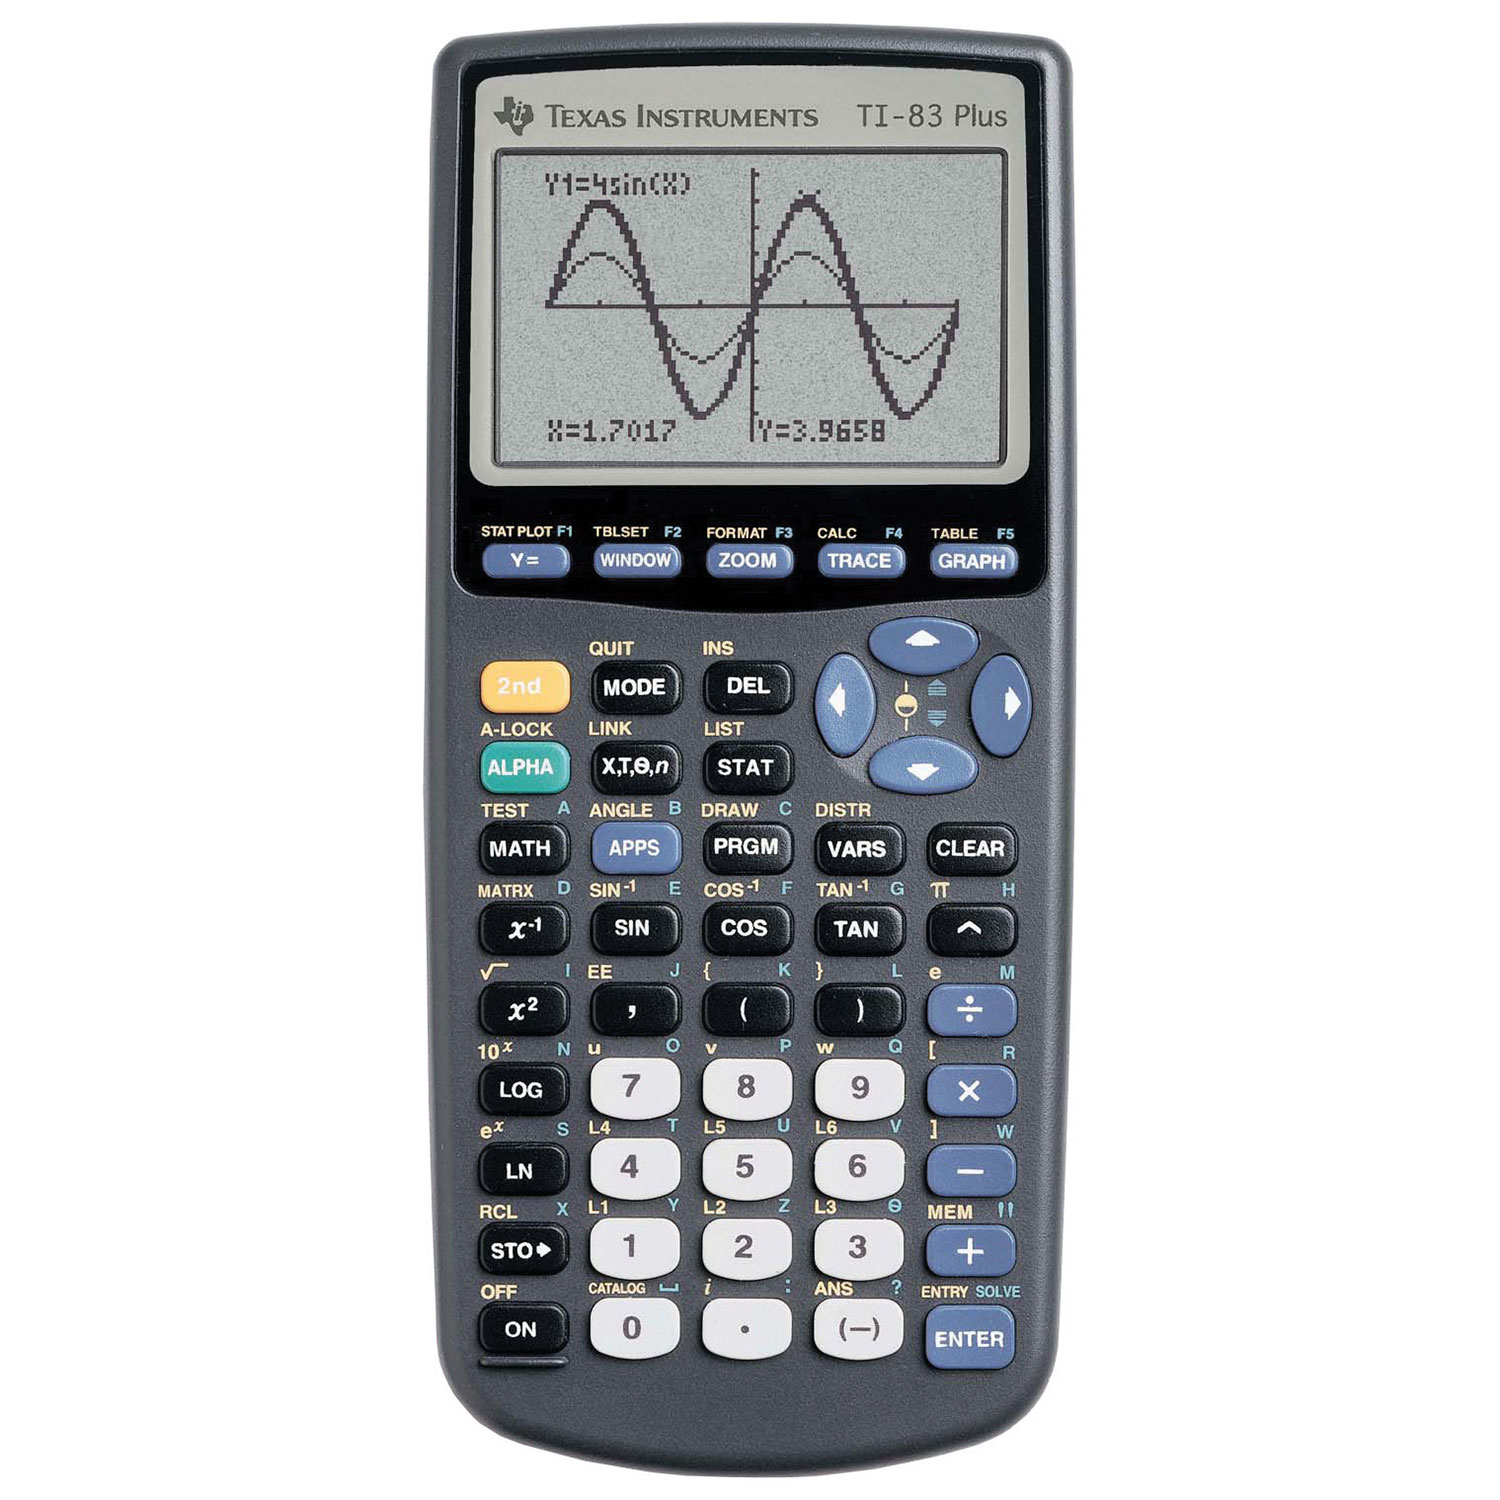 Texas instruments ti-84 plus graphing calculator | western.